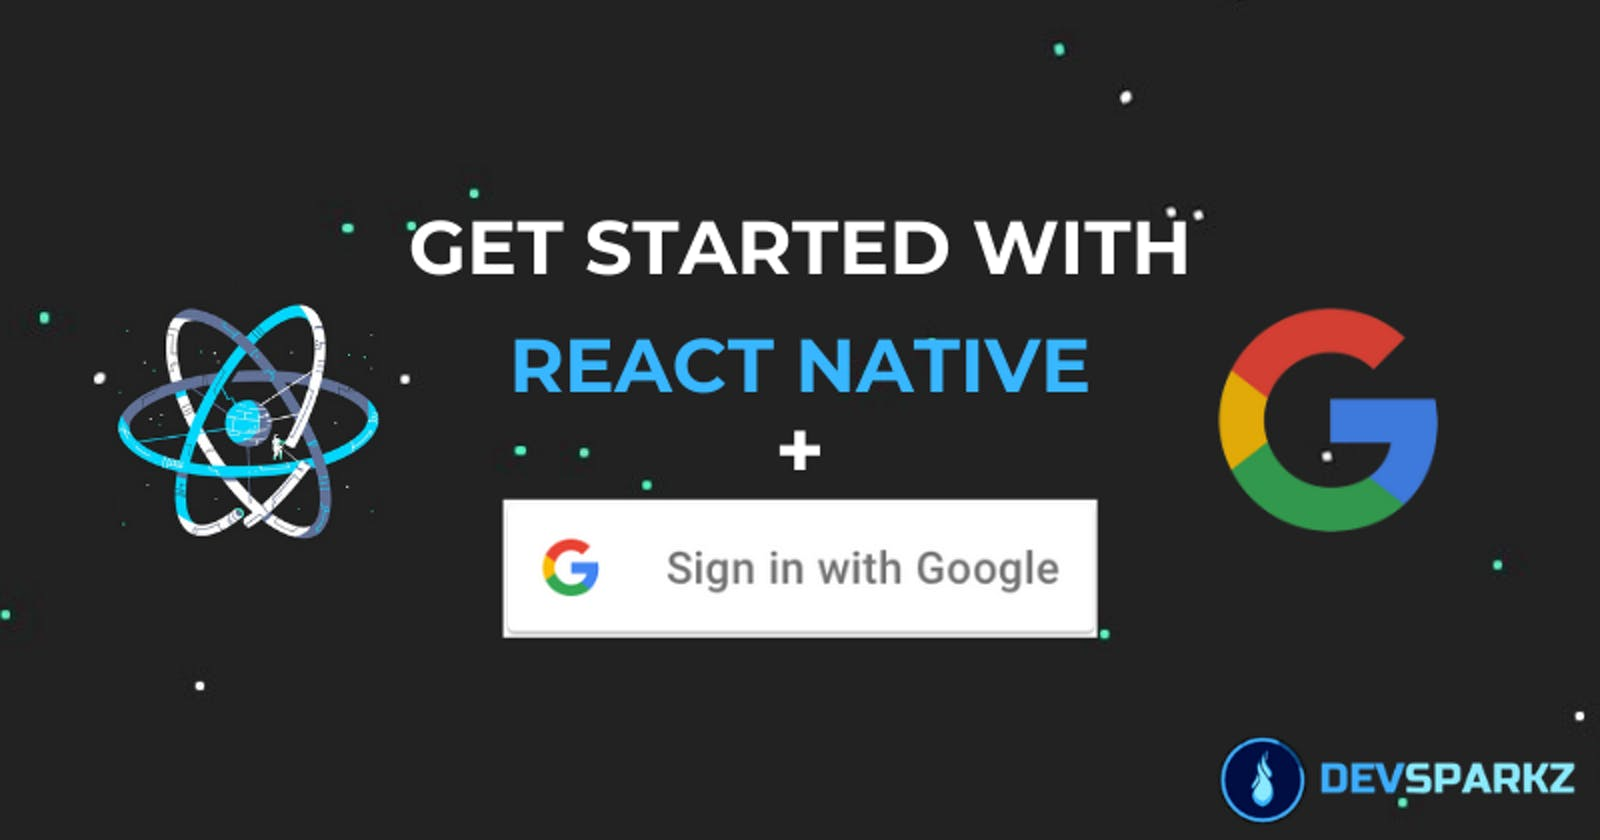 Get Started with React Native + Google Sign In